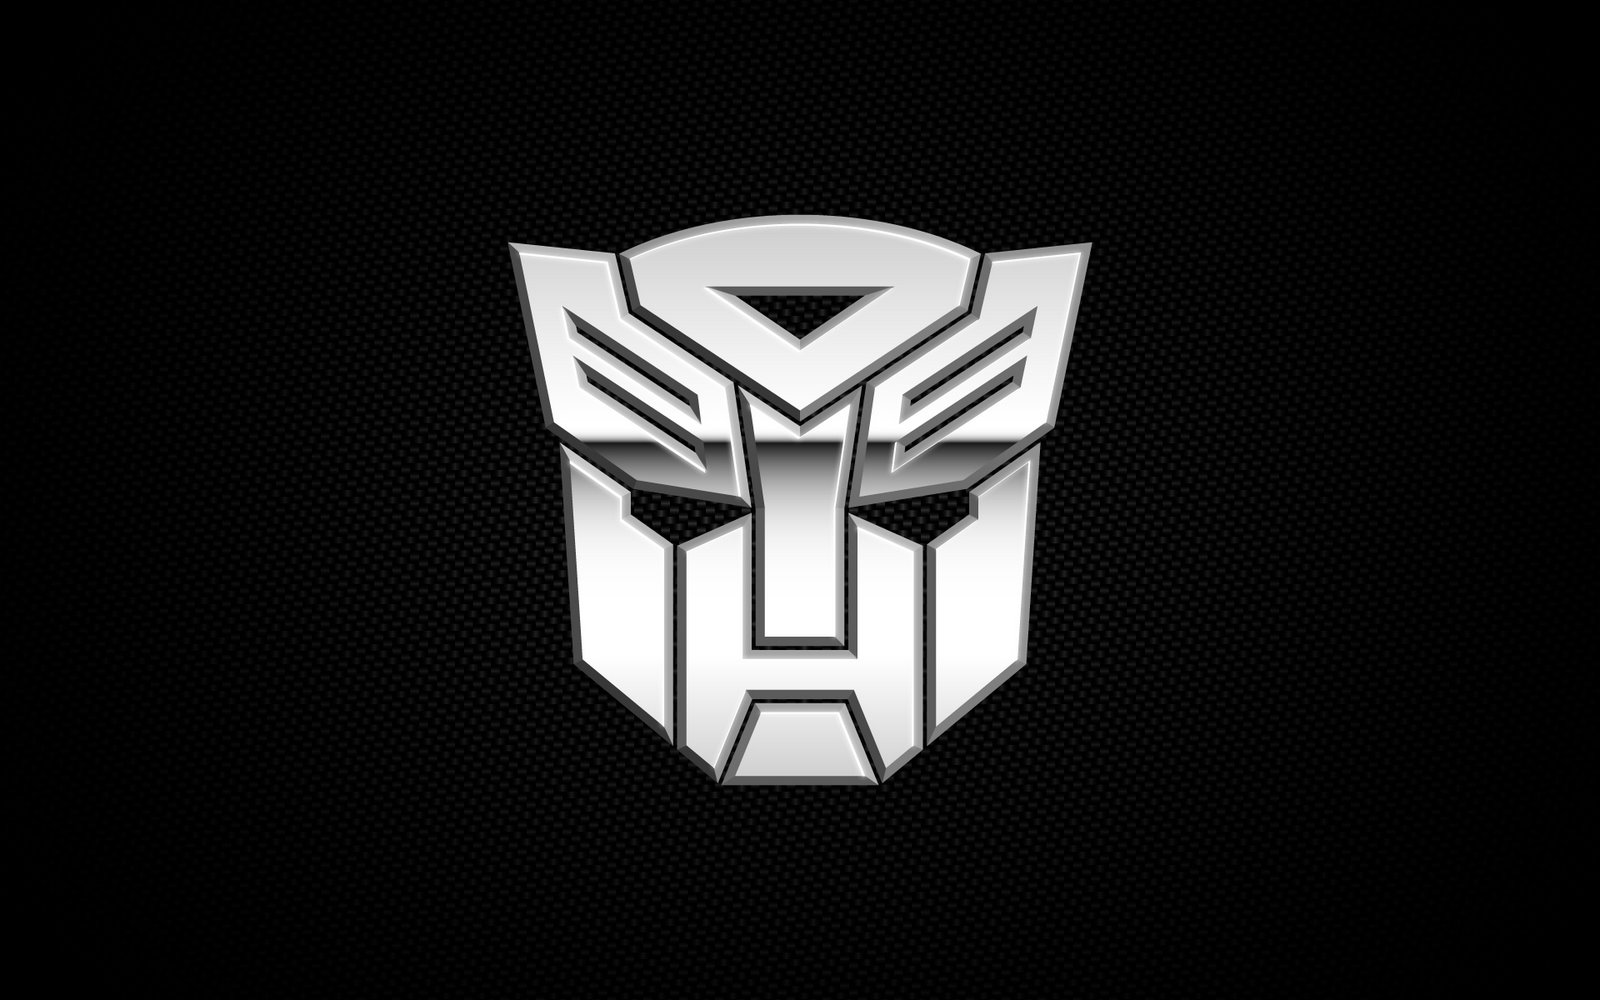 TRANSFORMERS MATRIX WALLPAPERS Insignias Autobot movie HD 1600x1000